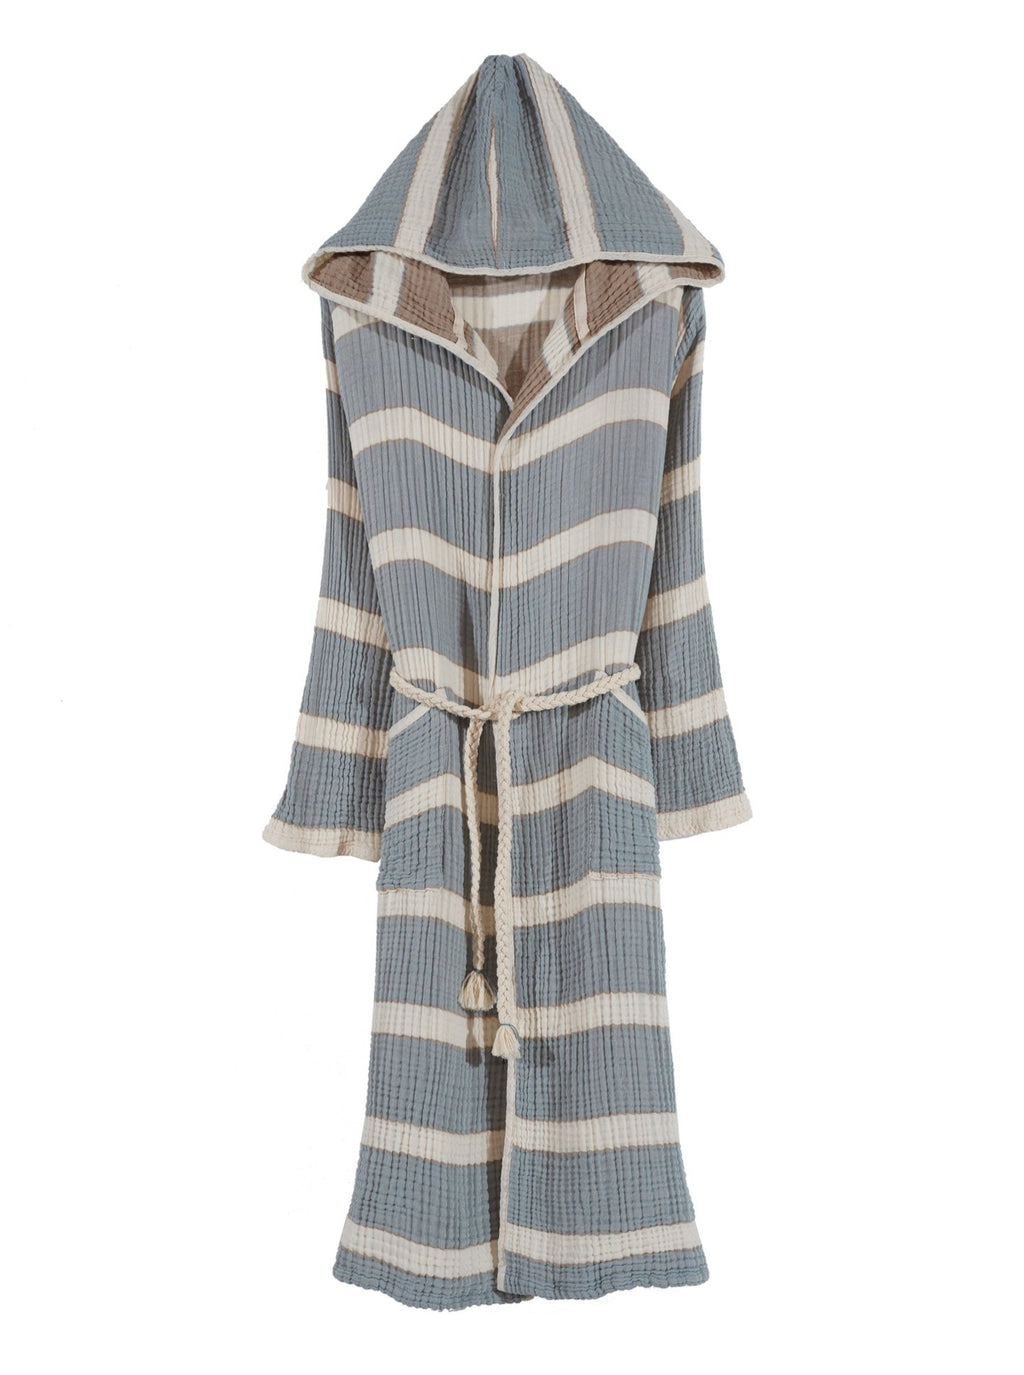 Quattro Bathrobe, 4-Layer Turkish Towel, Blue & Khaki